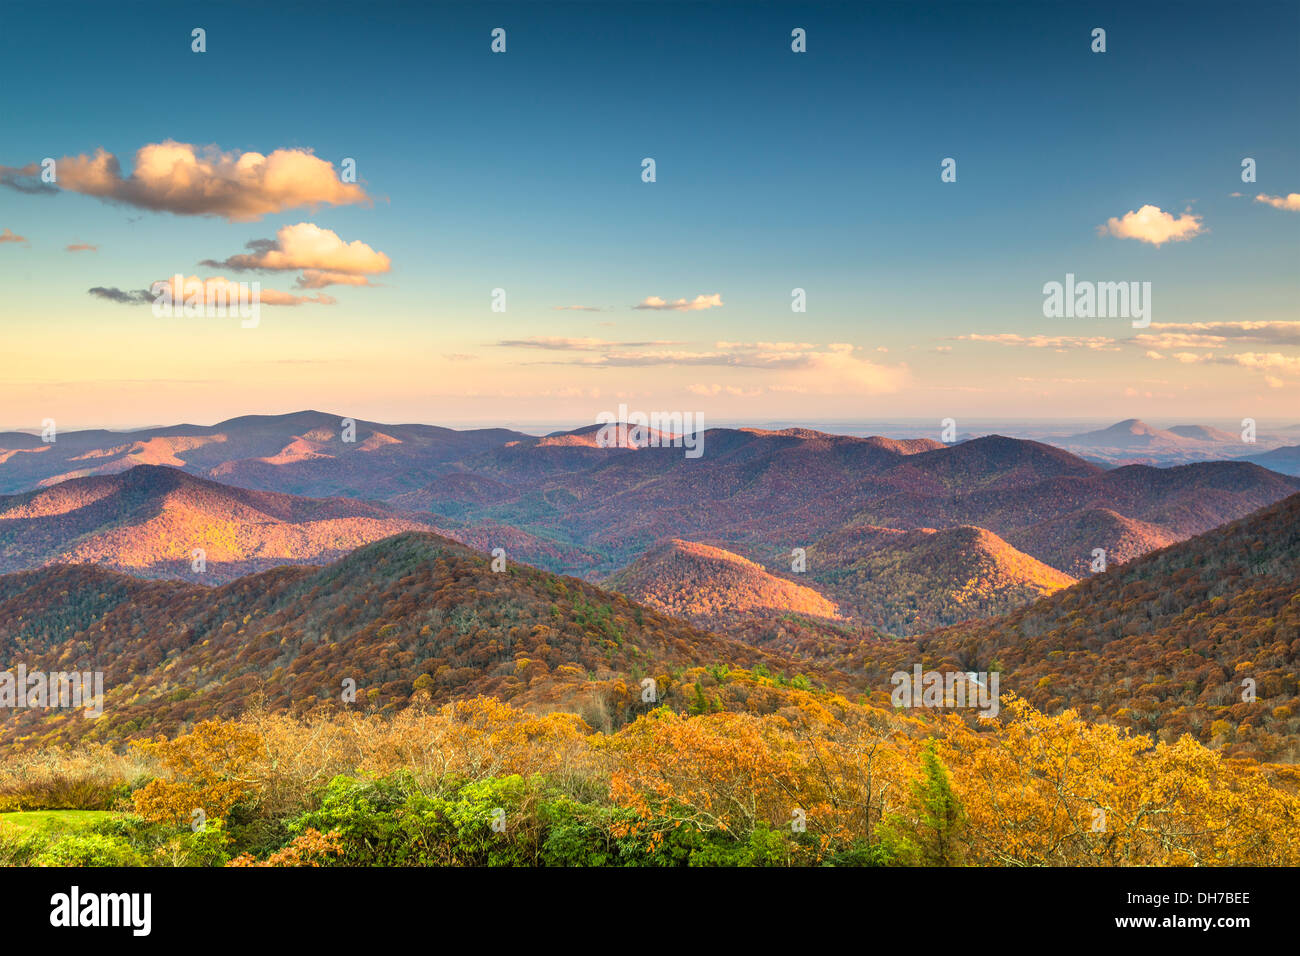 Blue Ridge Mountains at dusk in north Georgia, USA. - Stock Image